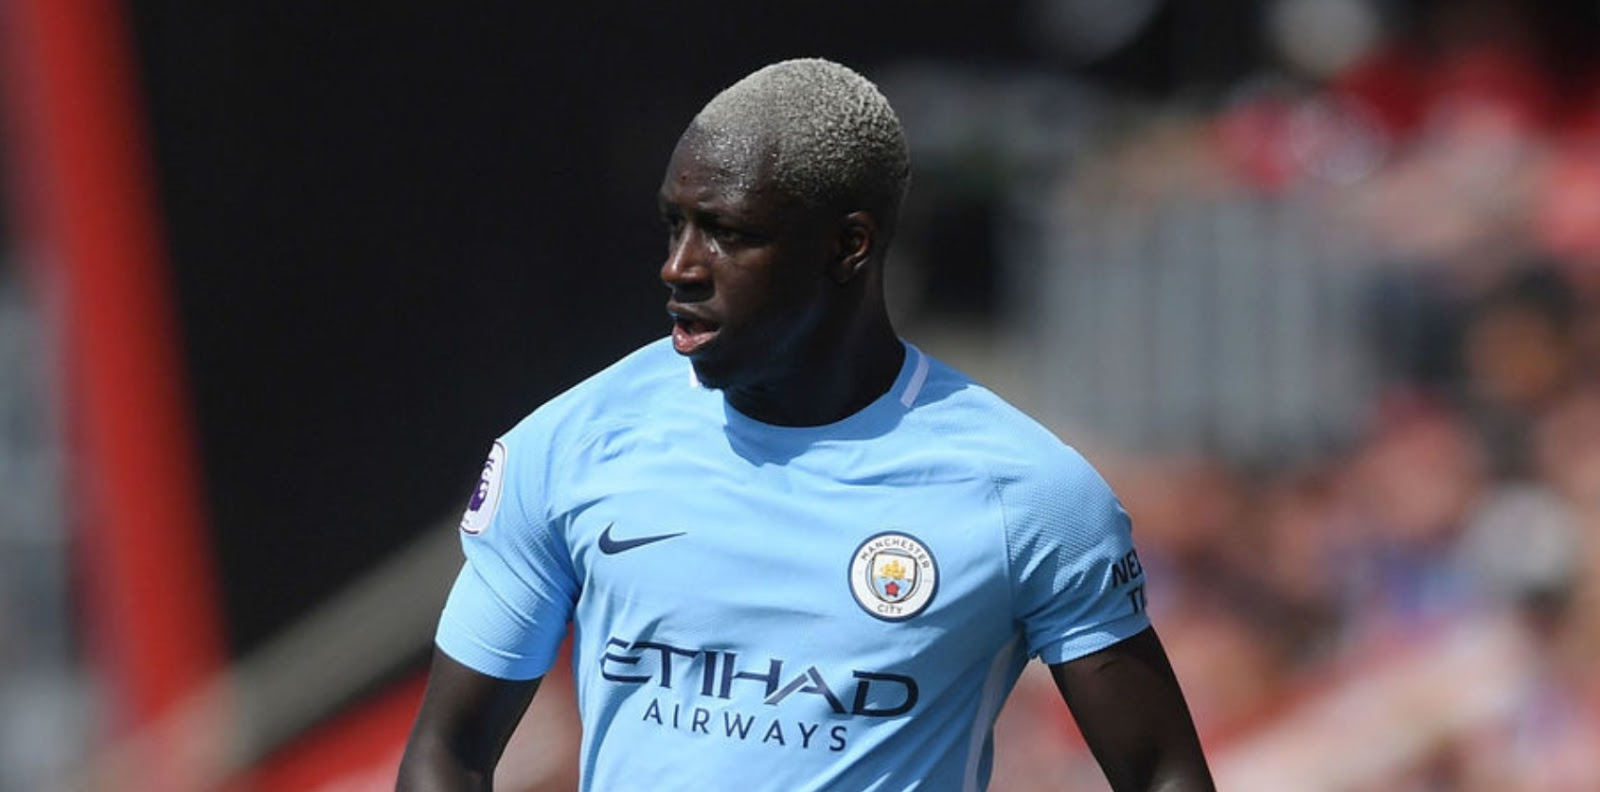 Mendy is currently most expensive defender in EPL